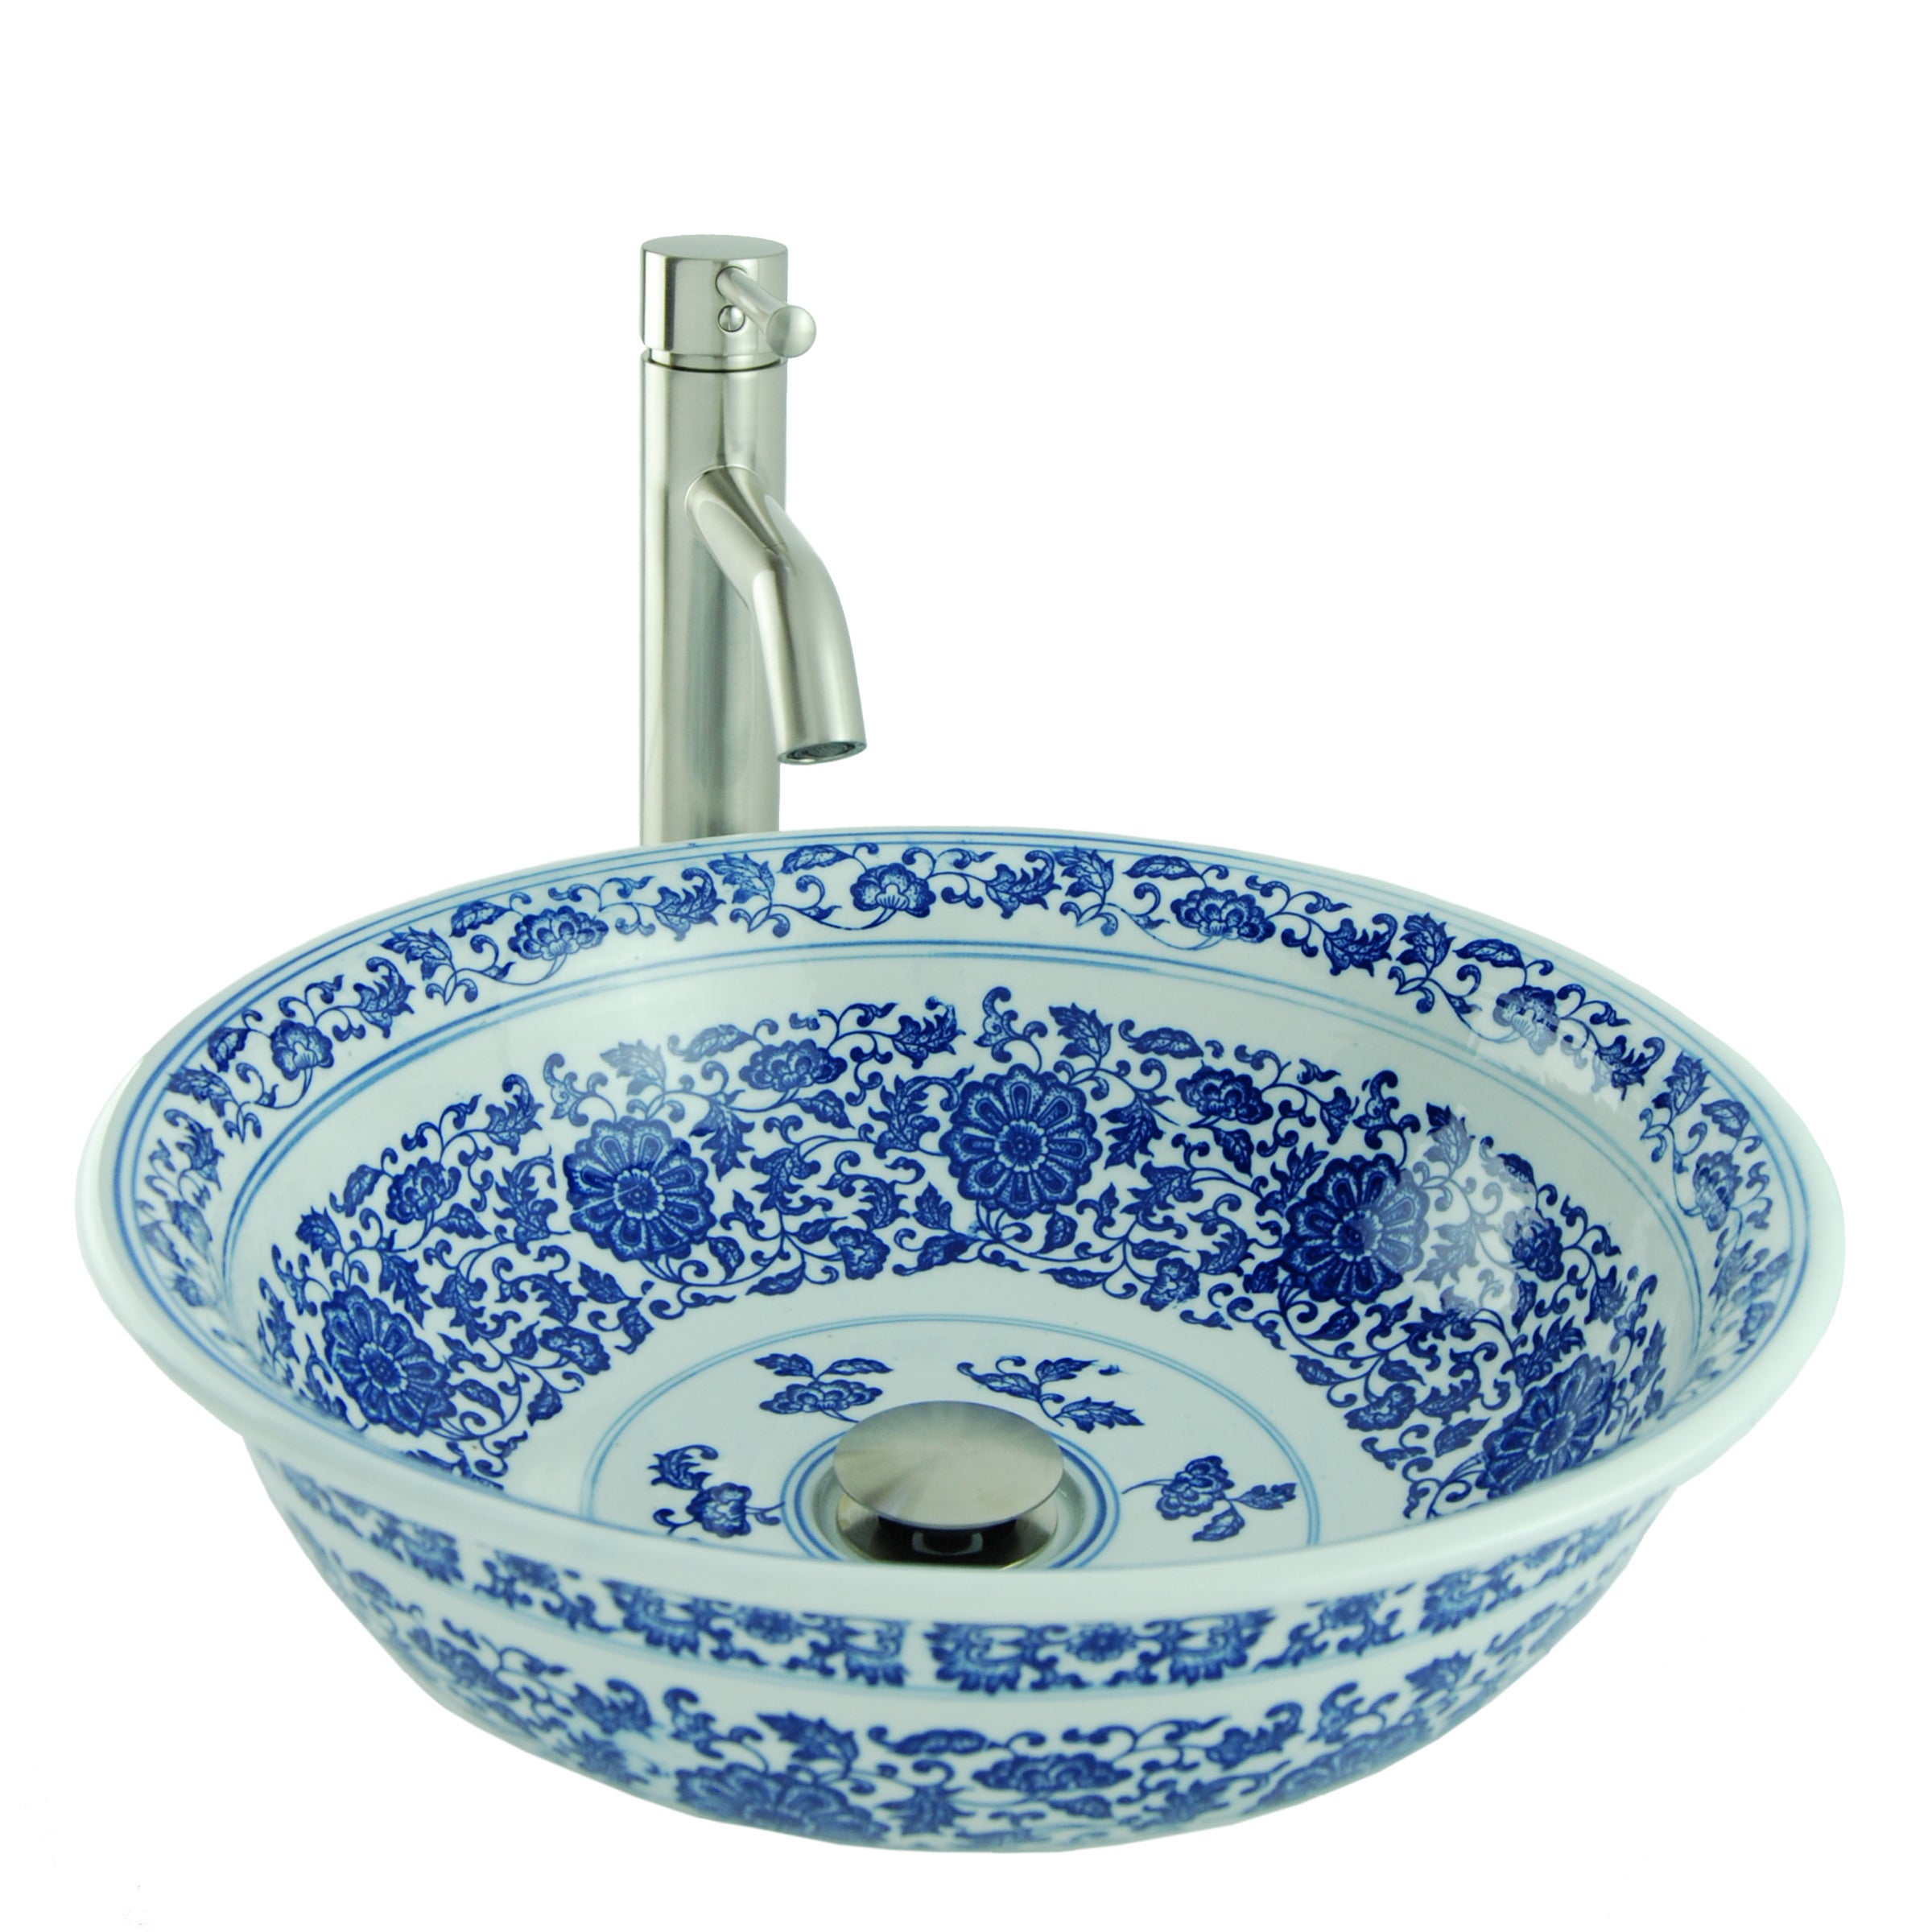 Painted Round Porcelain Vessel Sink in Blue and White with Vessel ...